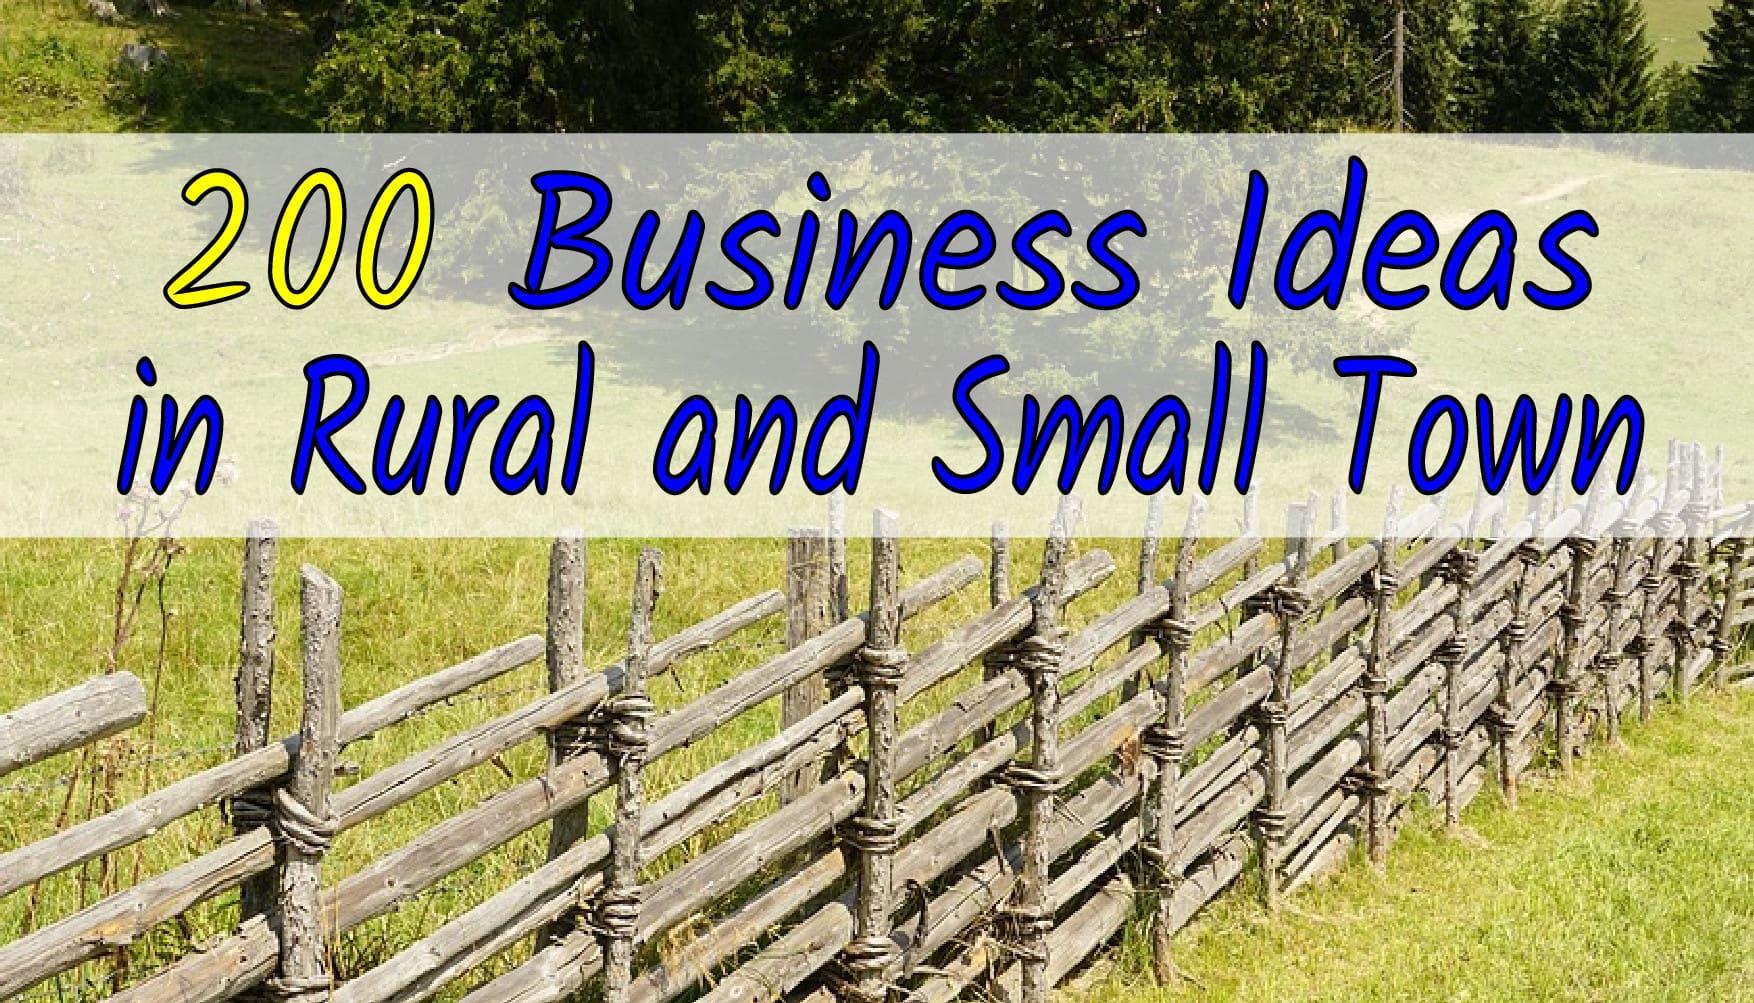 give 200 business ideas in rural areas and small townchris_tong